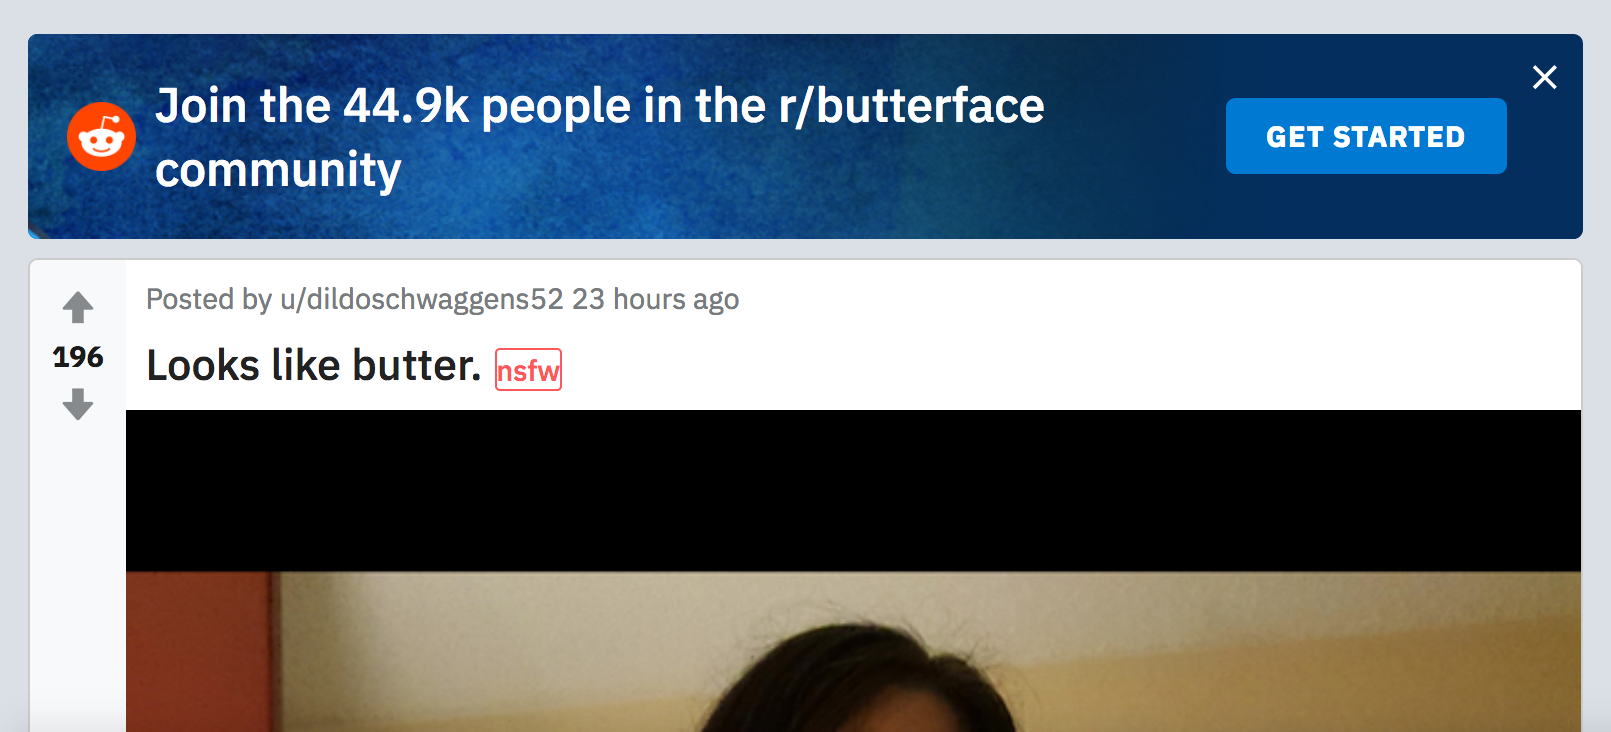 Call for action from Reddit: Join the r/butterface community!